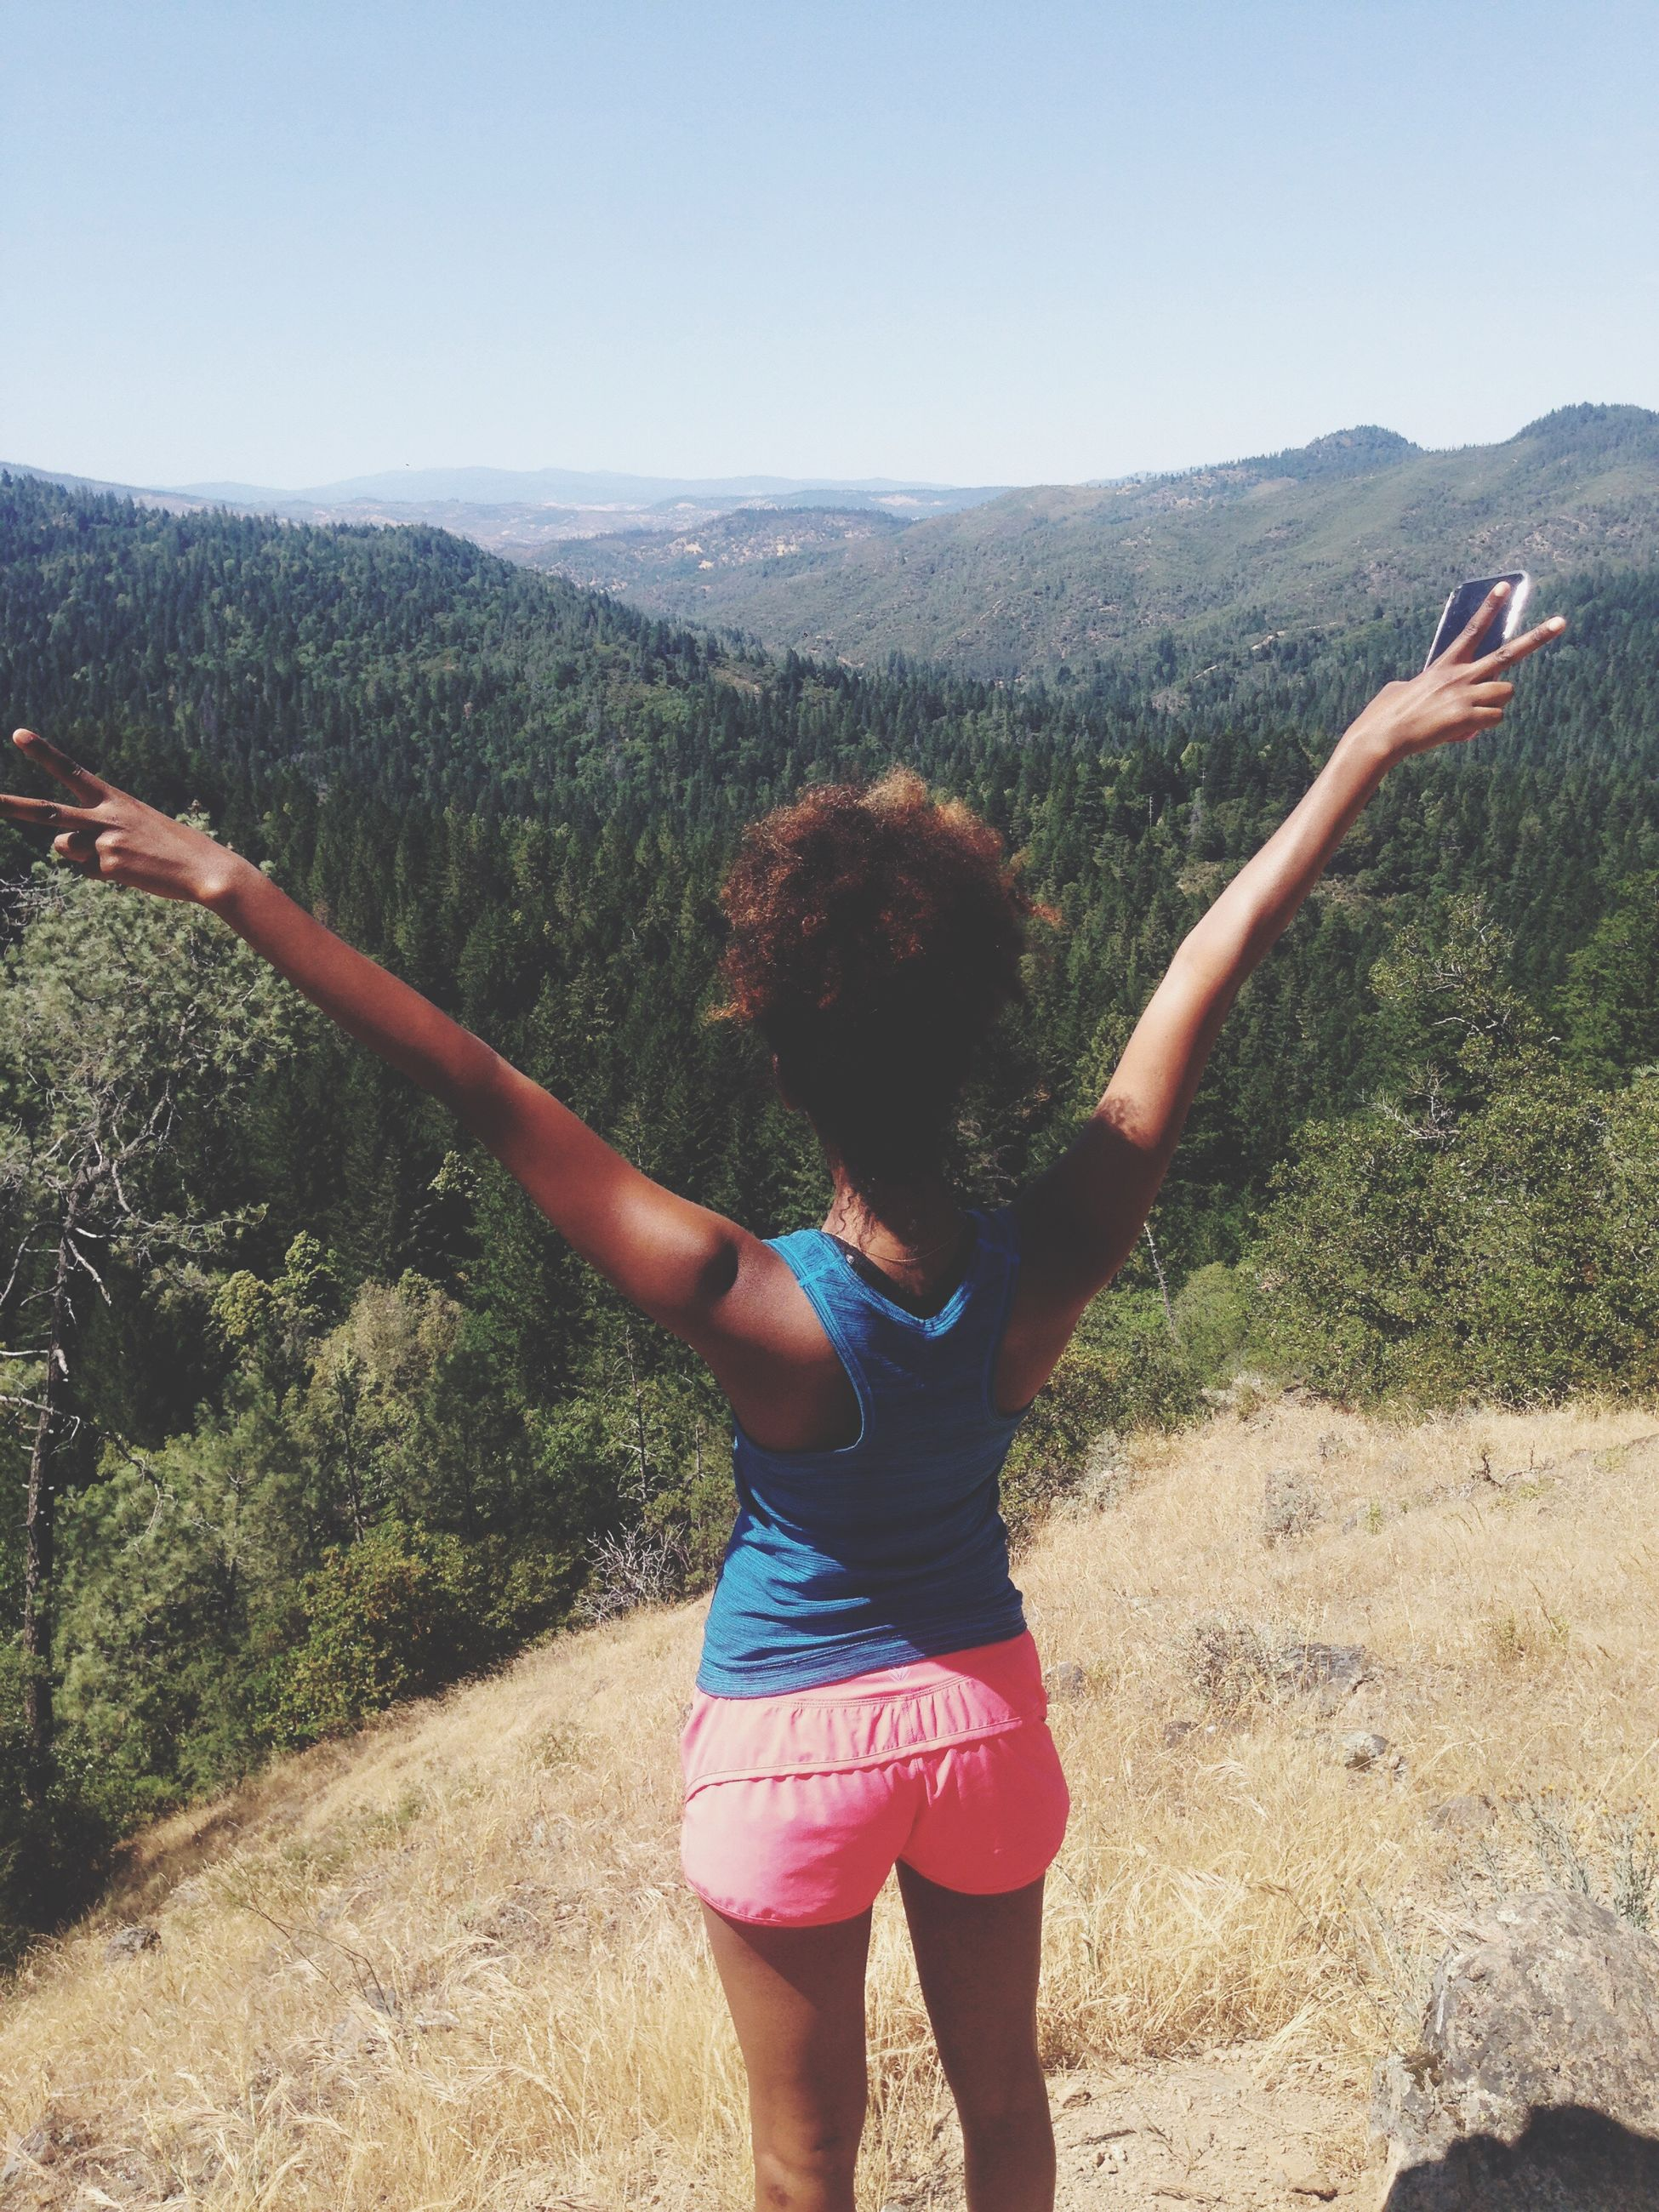 lifestyles, casual clothing, leisure activity, full length, standing, clear sky, rear view, mountain, three quarter length, young adult, nature, tranquil scene, sky, beauty in nature, tree, person, tranquility, young women